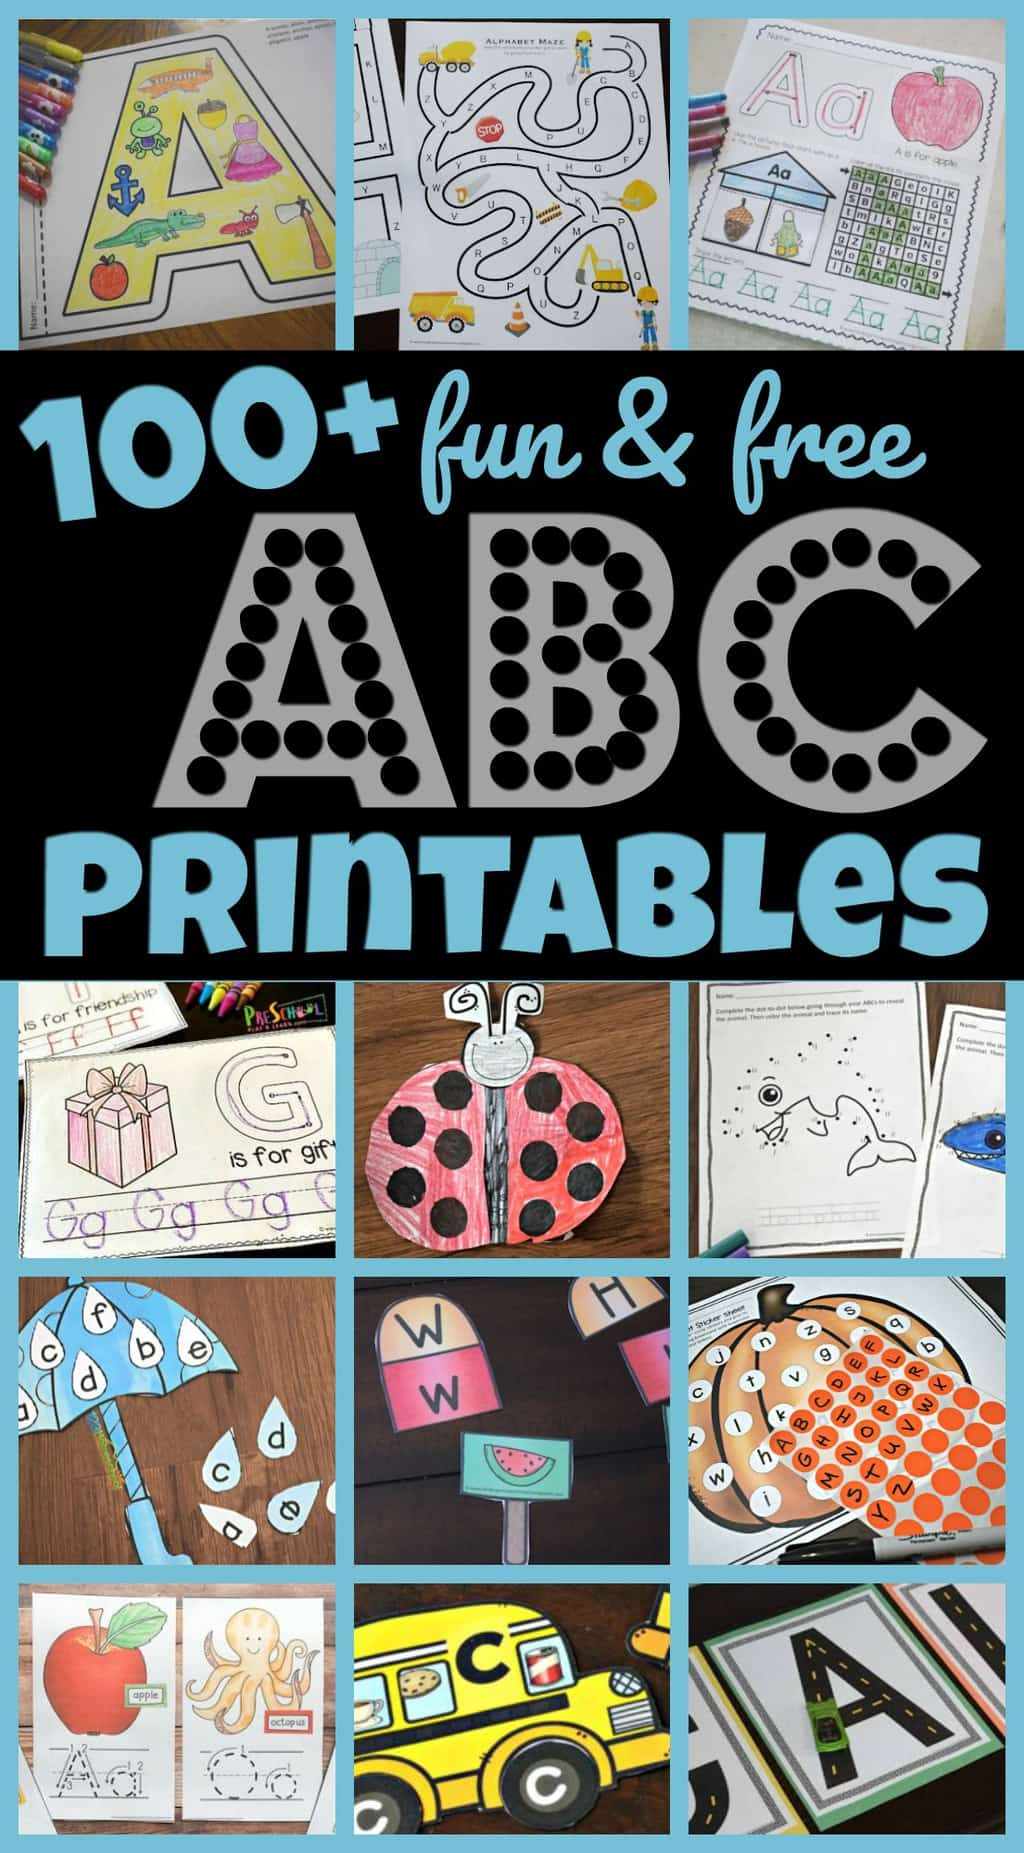 100+ Free ABC Printables -lots of alphabet worksheets, alphabet games, letter matching, letter recognition, alphabet crafts, alphabet activities and more to make learning their letters fun for toddler, preschool, pre k, and kindergarten age kids #abc #alphabet #preschool #kindergarten